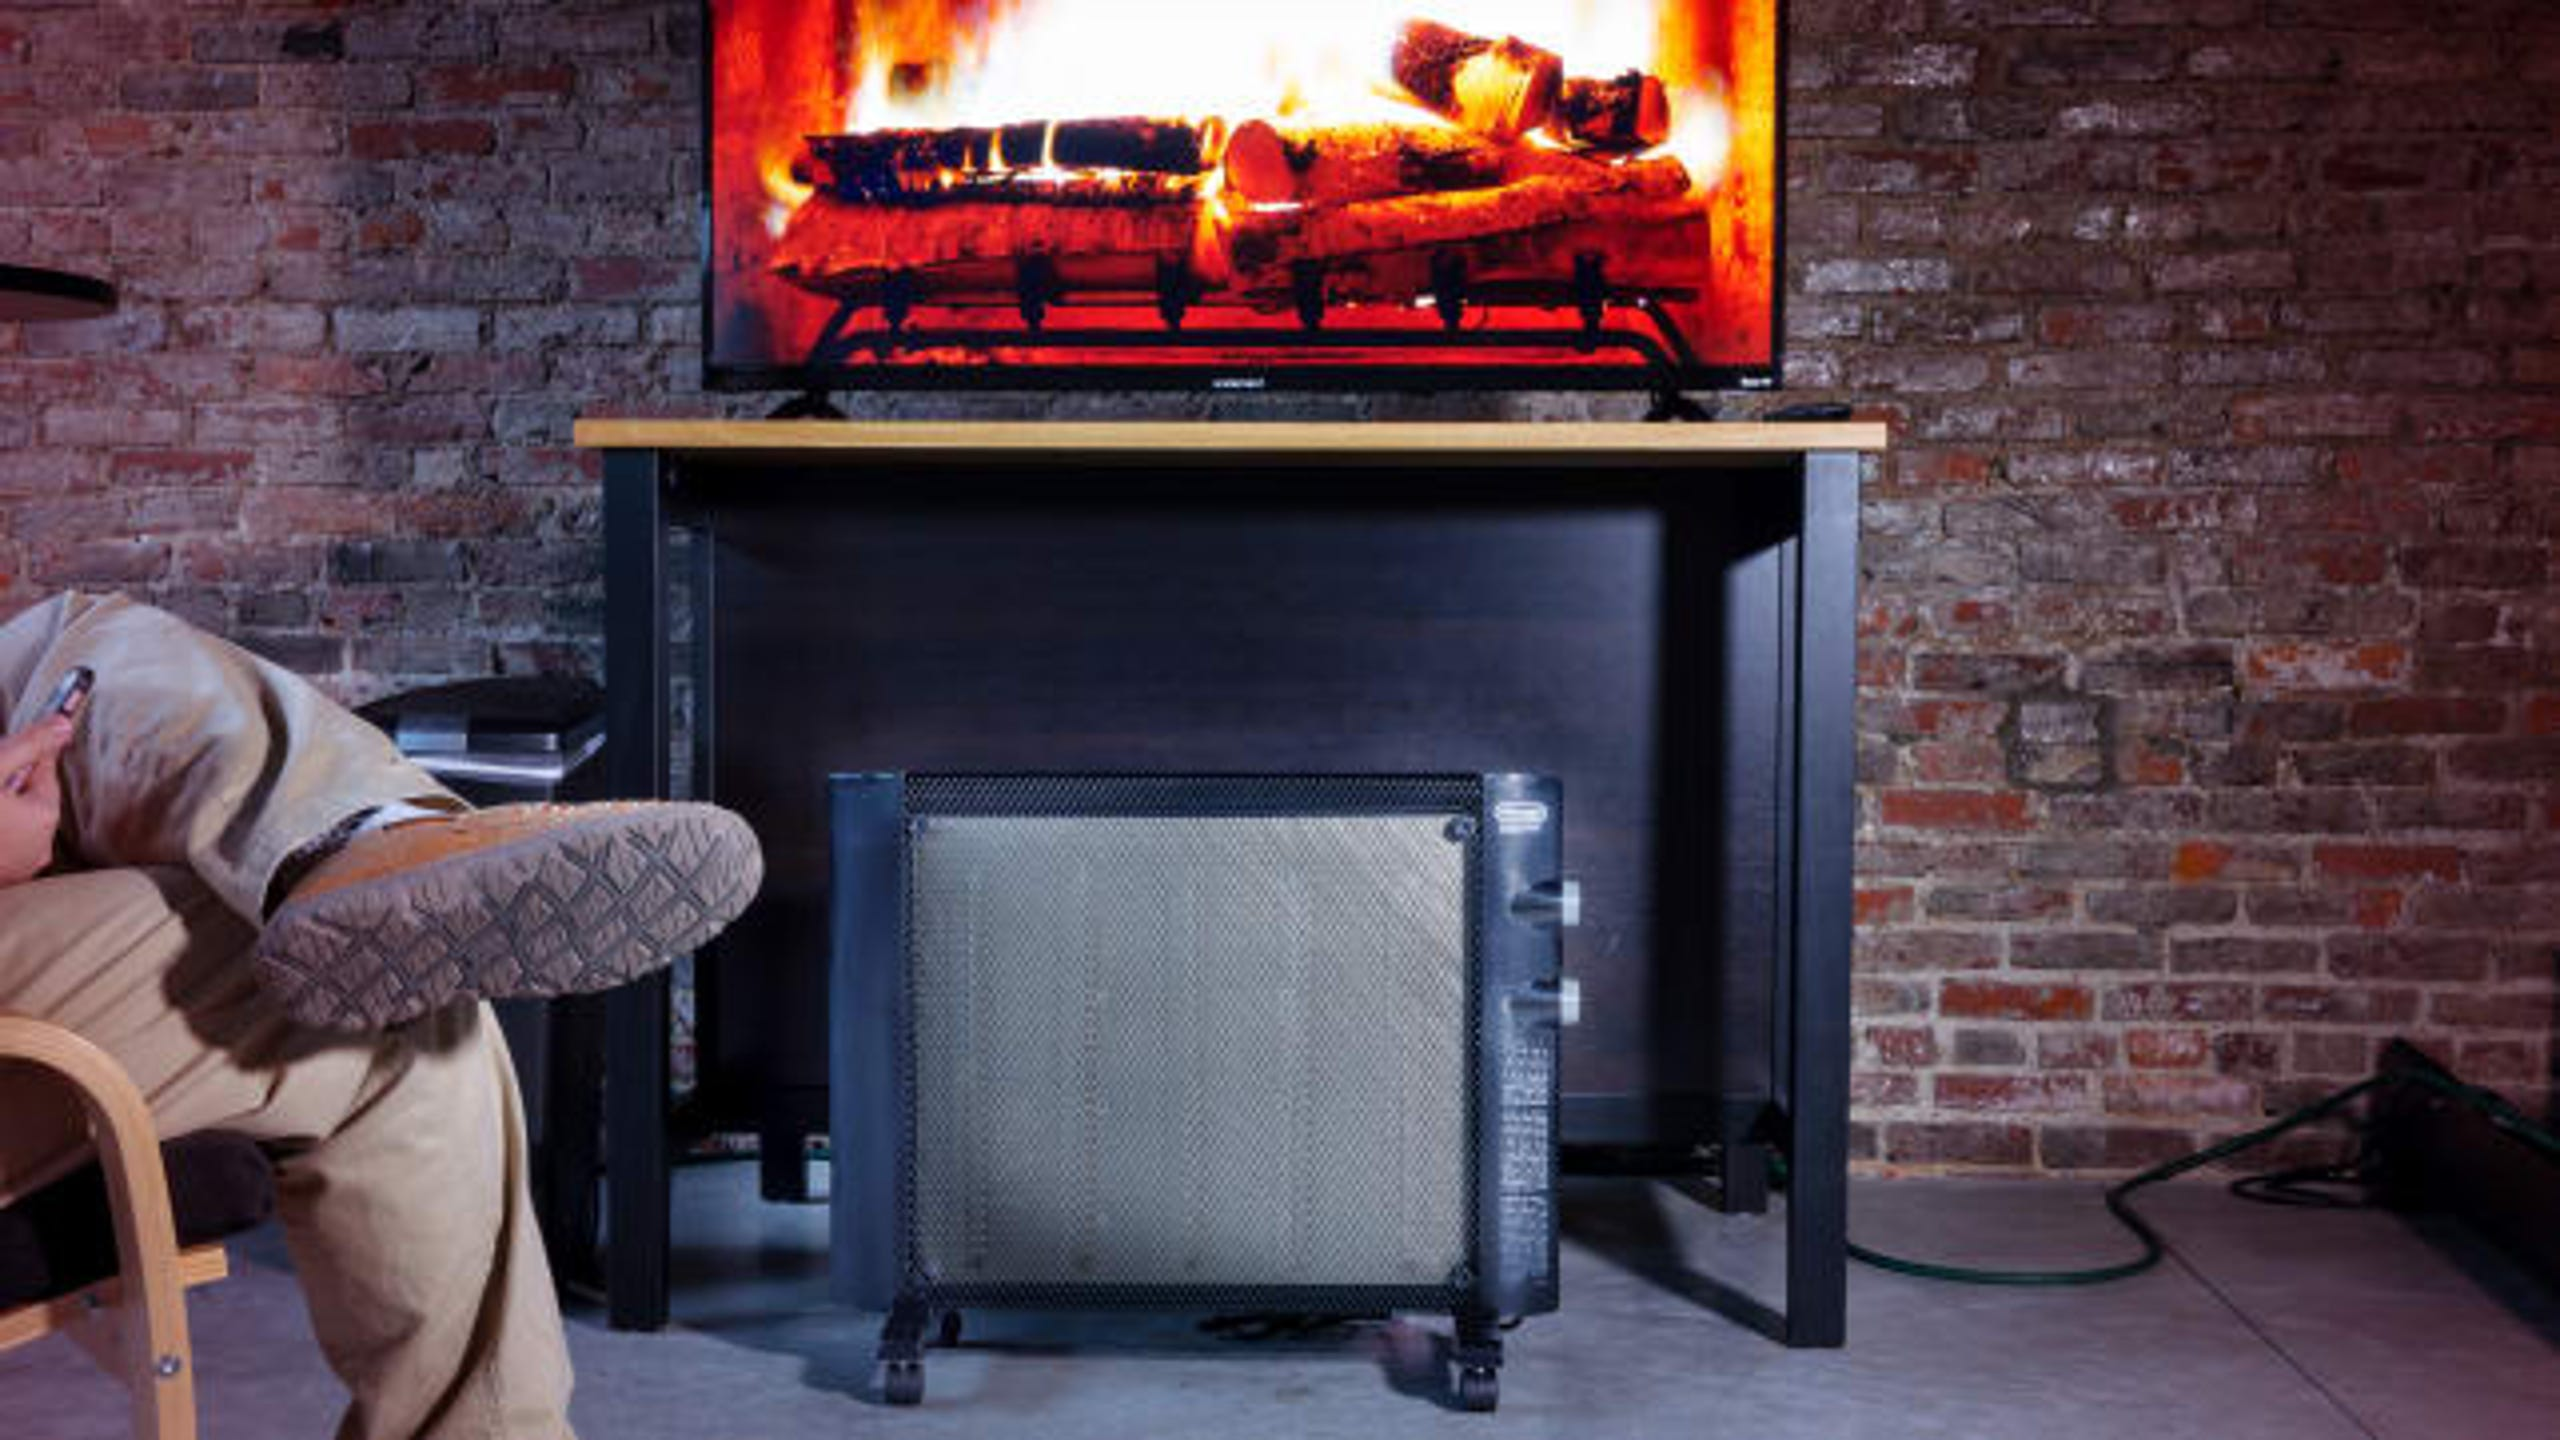 """Cold nights during the winter can be brutal, especially when you have a cold. If you don't want to jack up your thermostat and spend an arm and a leg on your gas bill, a space heater can solve all your drafty woes. This one by&nbsp;Delonghi is our favorite <a href=""""https://www.reviewed.com/home-outdoors/best-right-now/the-best-space-heaters?utm_source=usat&amp;utm_medium=referral&amp;utm_campaign=collab"""" target=""""_blank"""">space heater we tested</a>&nbsp;because it was the fastest at making rooms super toasty, and was incredibly easy to lift and transport. (<strong><a href=""""https://www.amazon.com/DeLonghi-HMP1500-Mica-Panel-Heater/dp/B005MMN75G/ref=as_li_ss_tl?ie=UTF8&amp;linkCode=ll1&amp;tag=usatgallery-20&amp;linkId=a4682ba3e7abc45b4d45fdce4c605e6a&amp;language=en_US"""" target=""""_blank"""">$88.98 on Amazon</a></strong>)"""